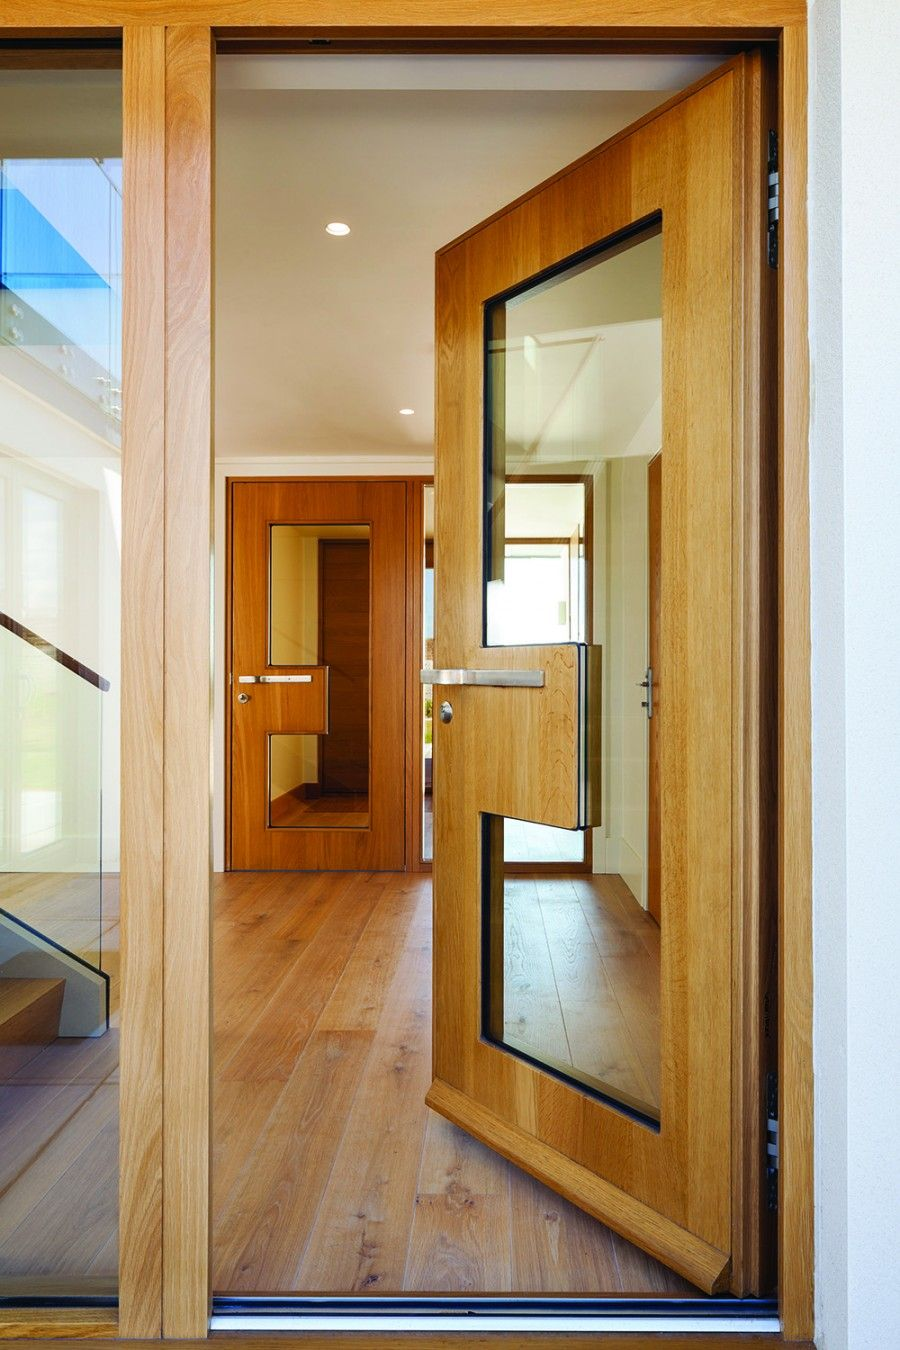 A fully glazed door with a twist